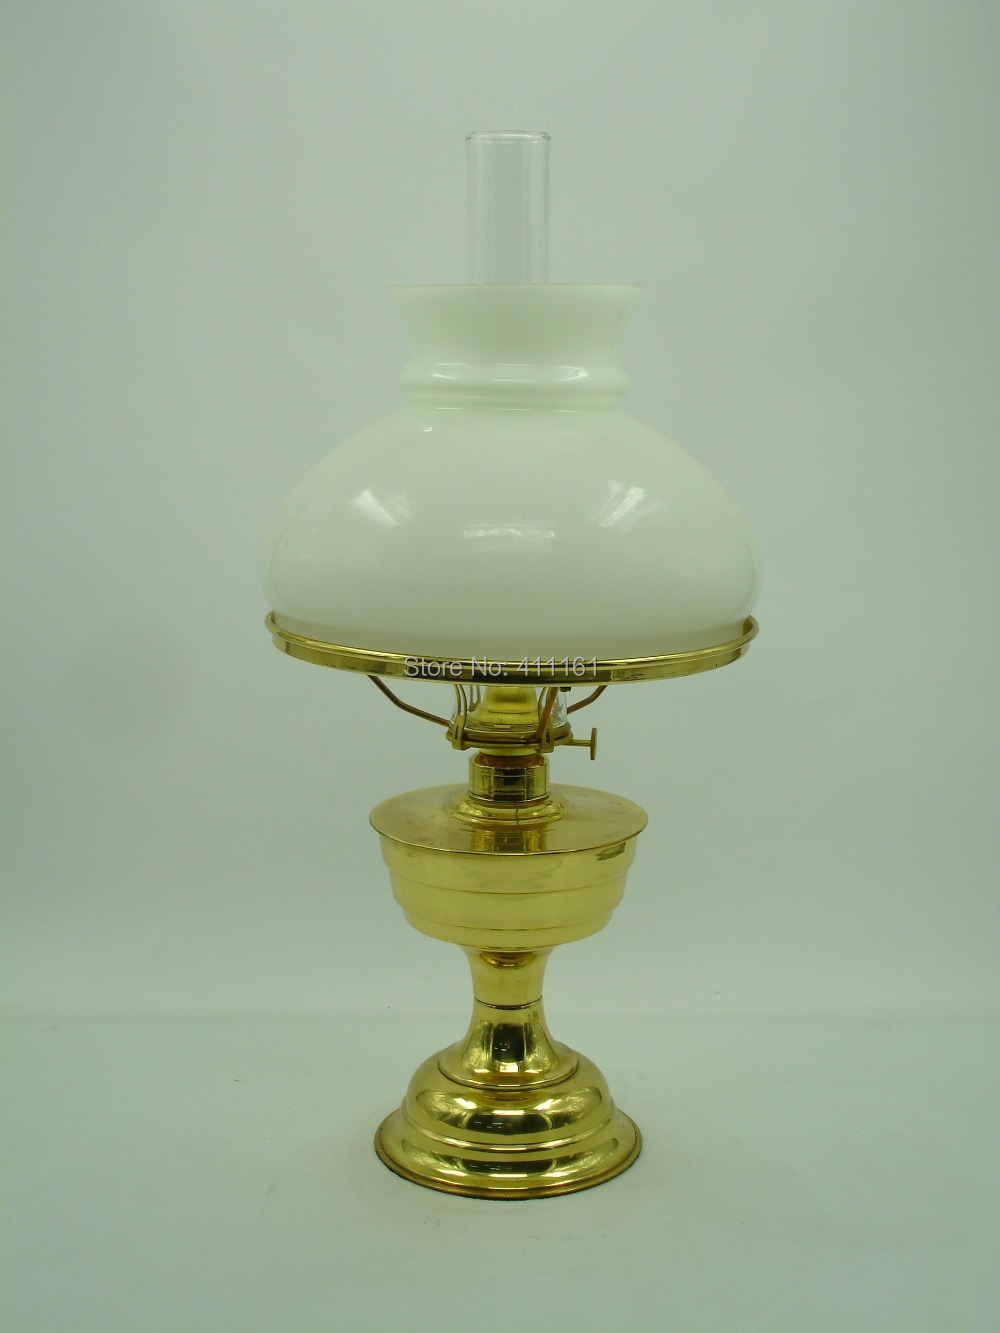 Deluxe Brass Evening Lamp Antique brass oil lamp lighting lantern paraffin lamp collection #59(China (Mainland))